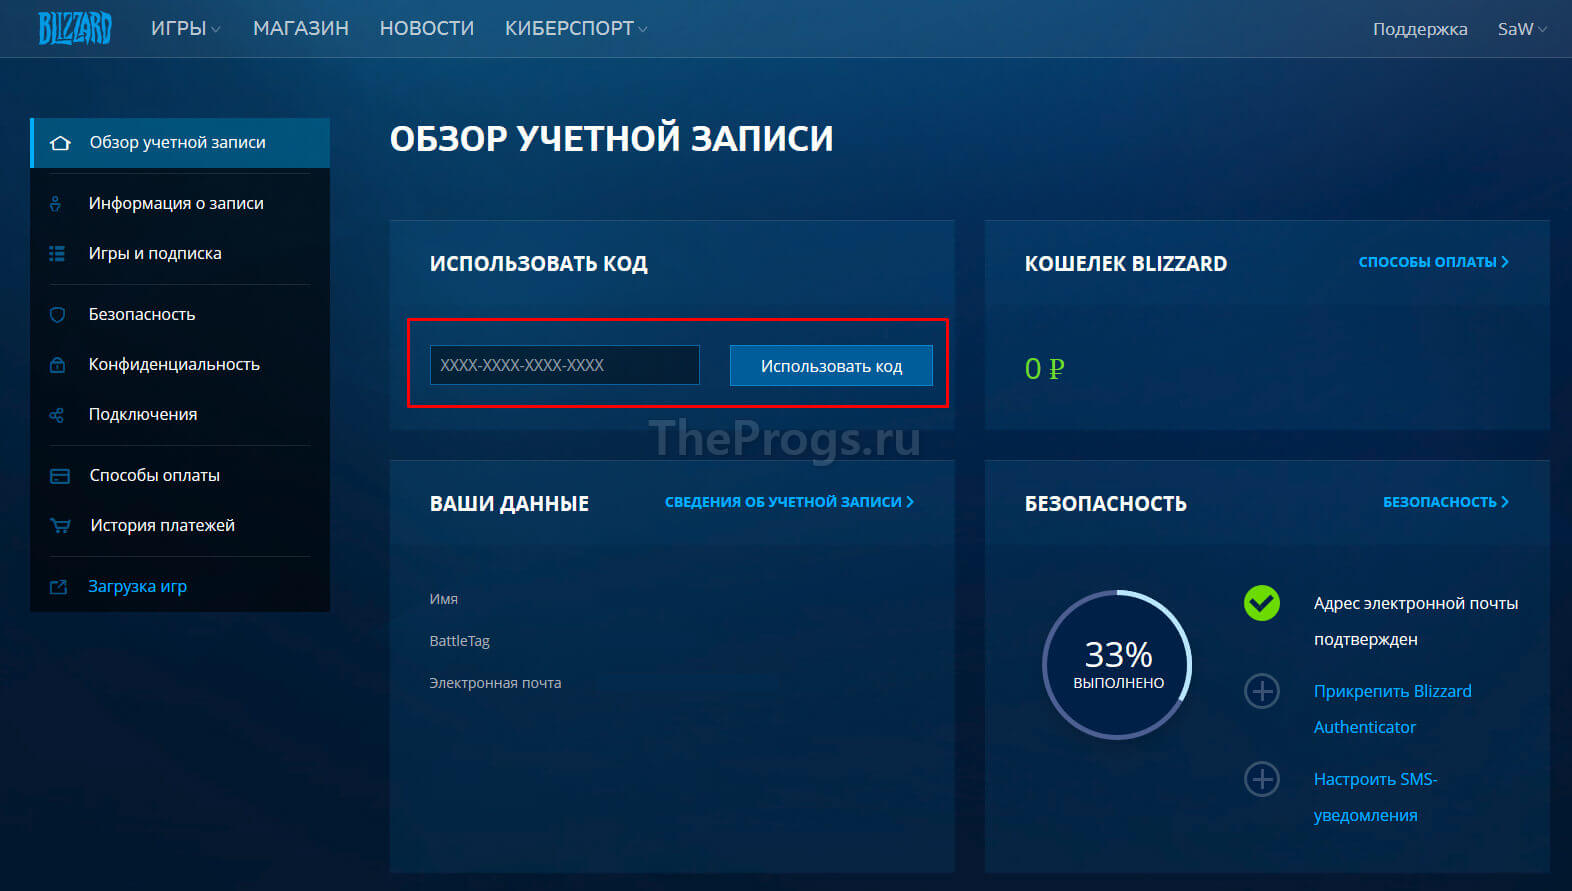 Активация ключа в Battle.net (фото)